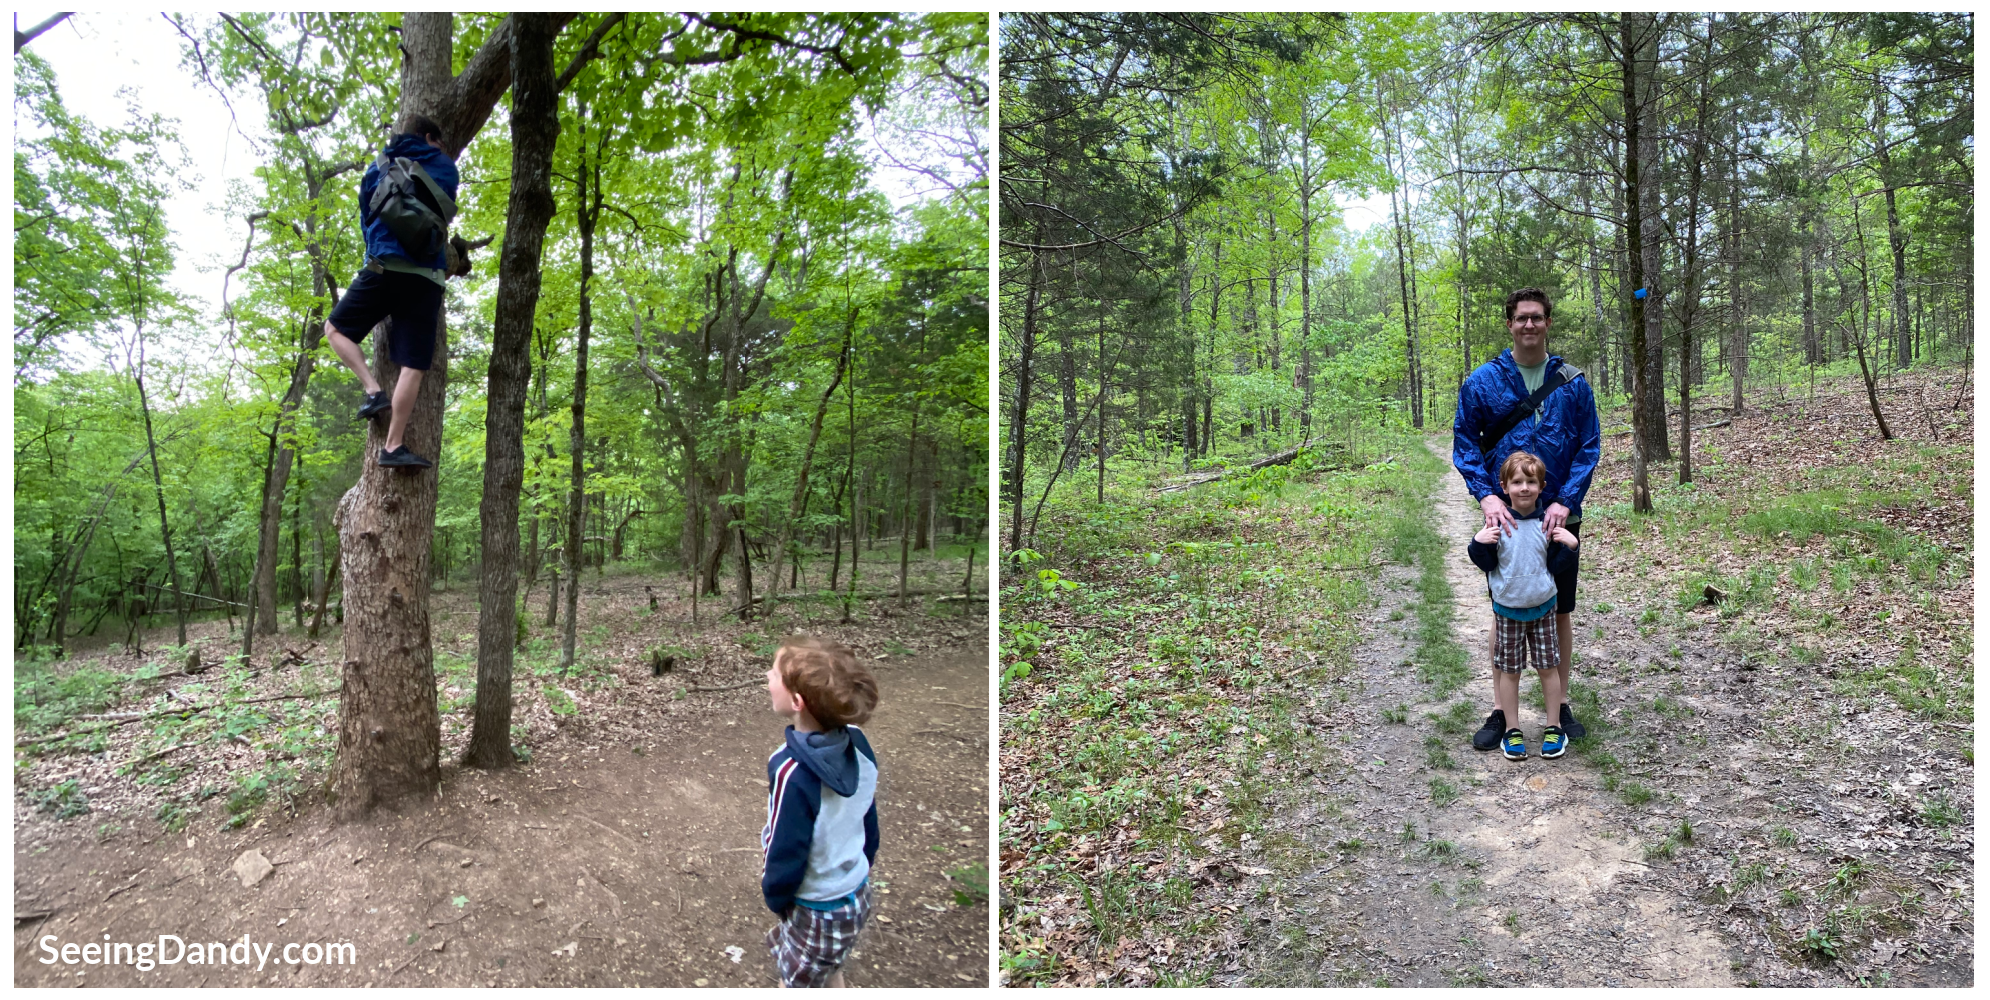 family hiking, st. louis family, hiking adventures, hiking trail, tree climbing